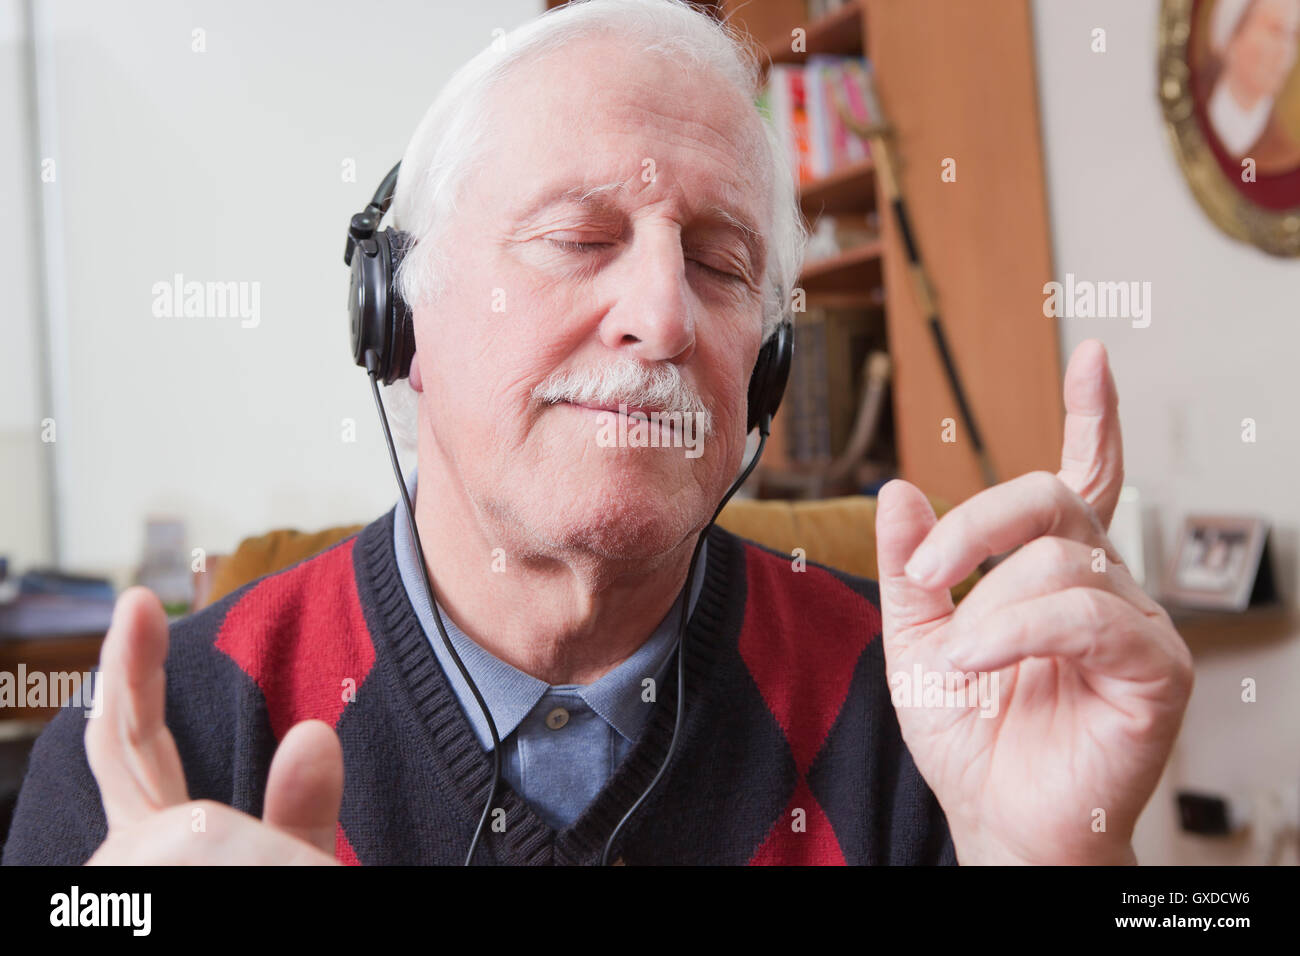 Senior man listening to music on écouteurs à la maison Banque D'Images